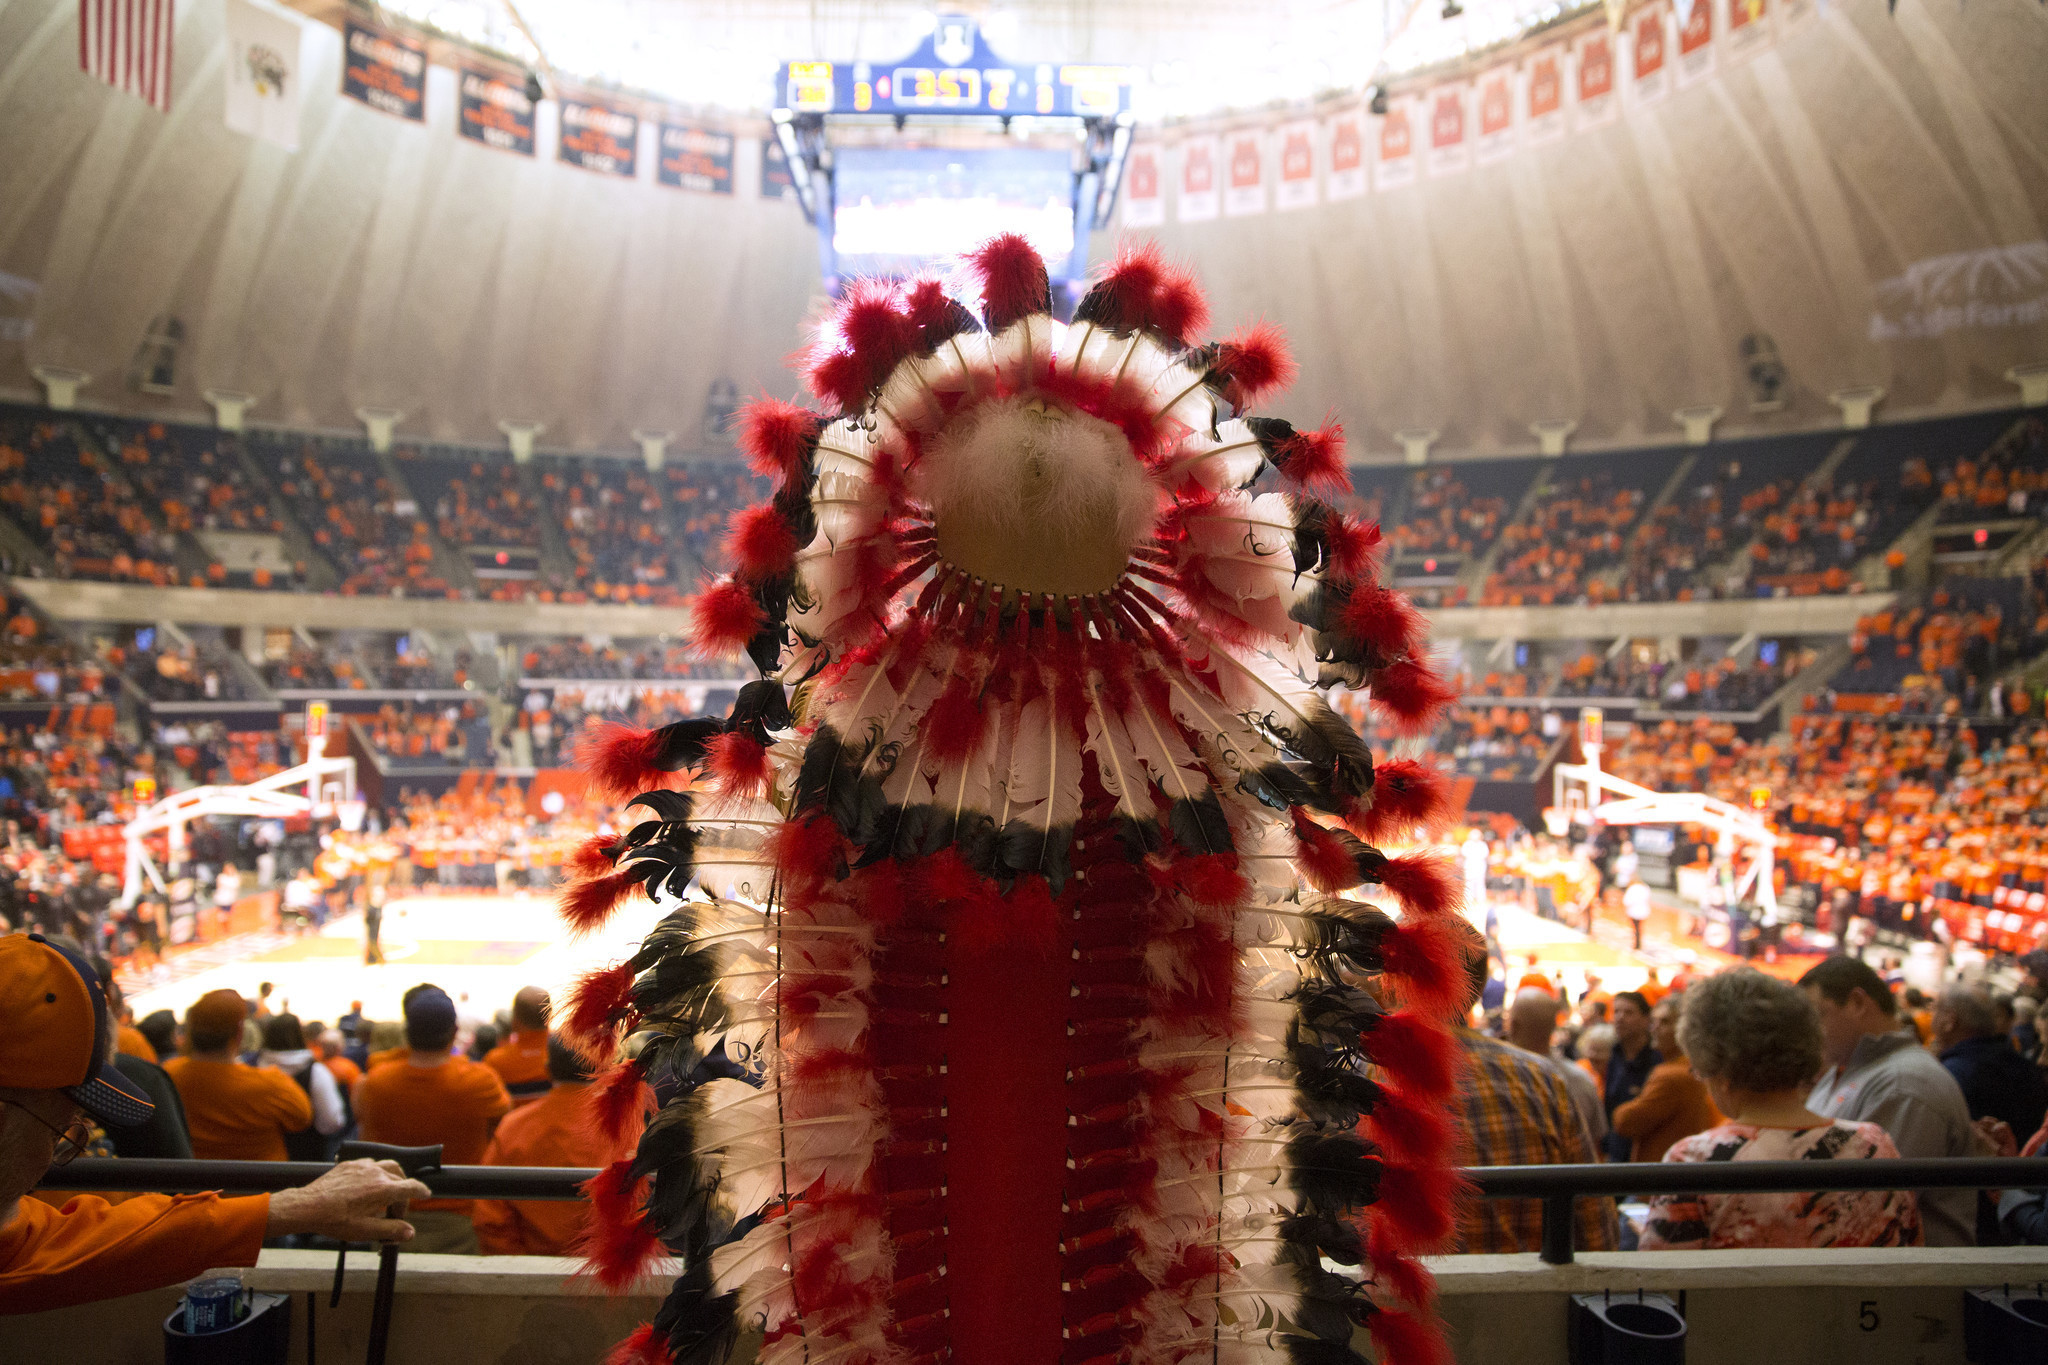 an argument against the dismissal of chief illiniwek the mascot of the university of illinois due to